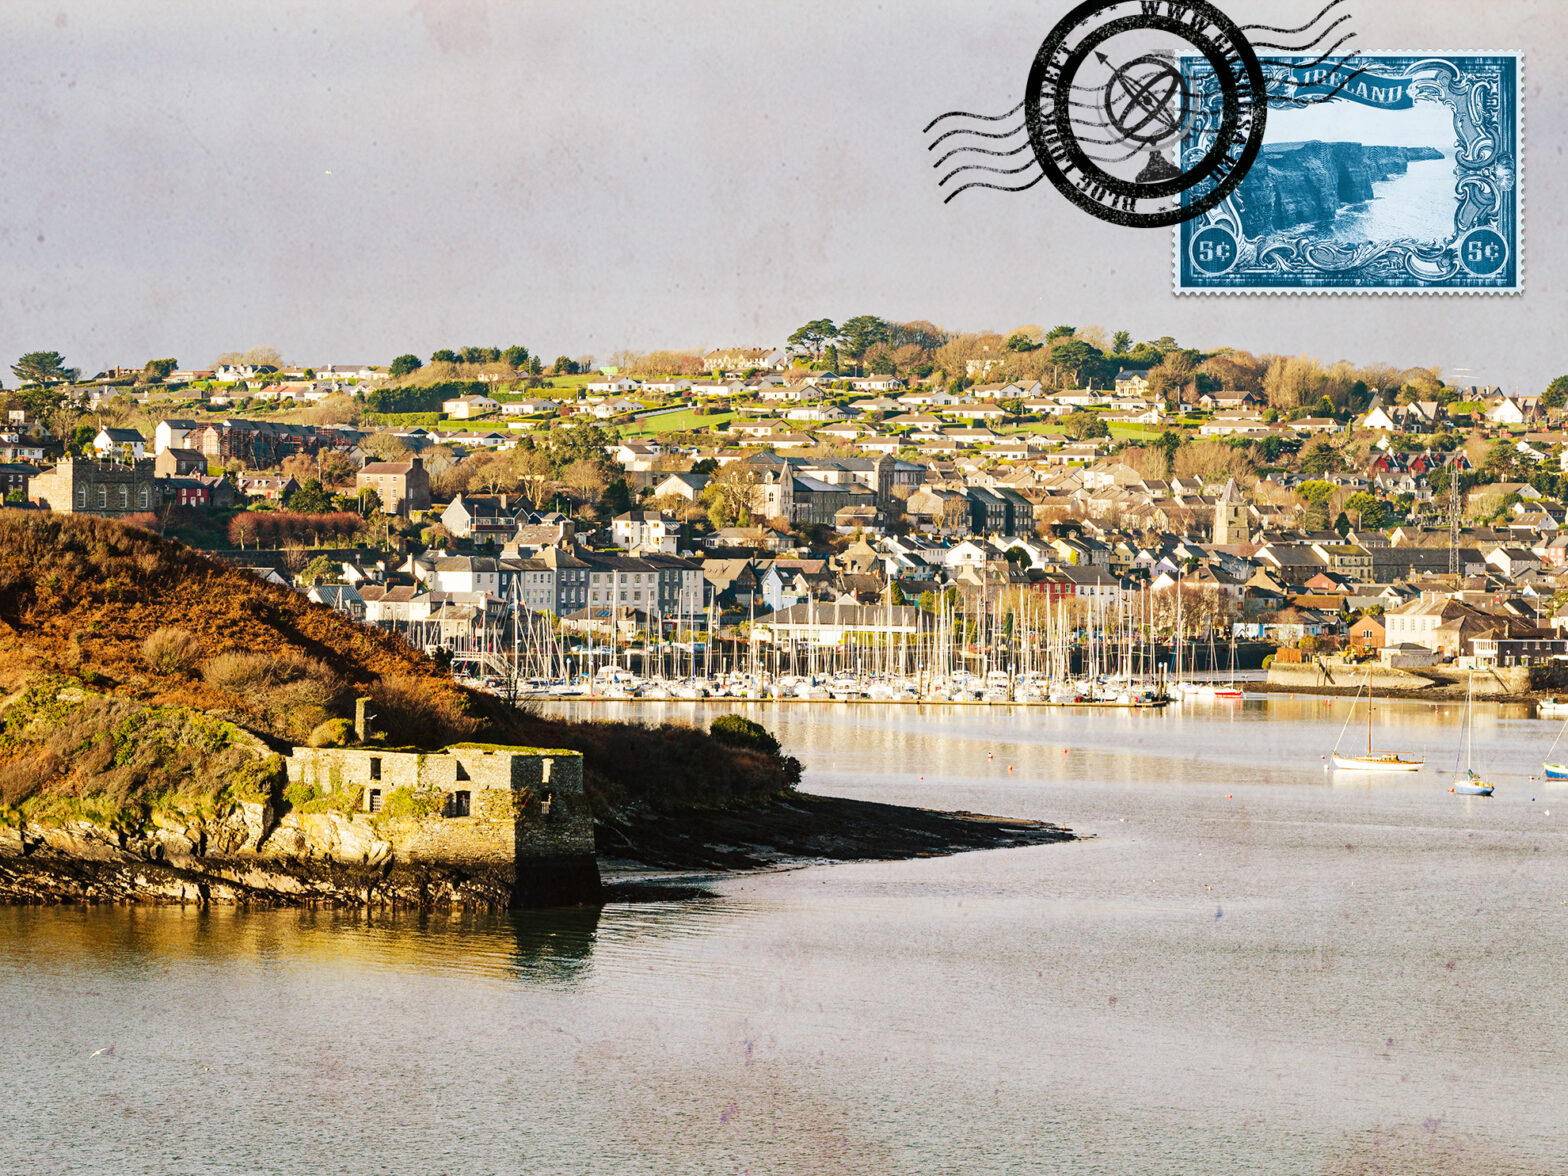 Visiting Kinsale and the marina for an escape from Cork